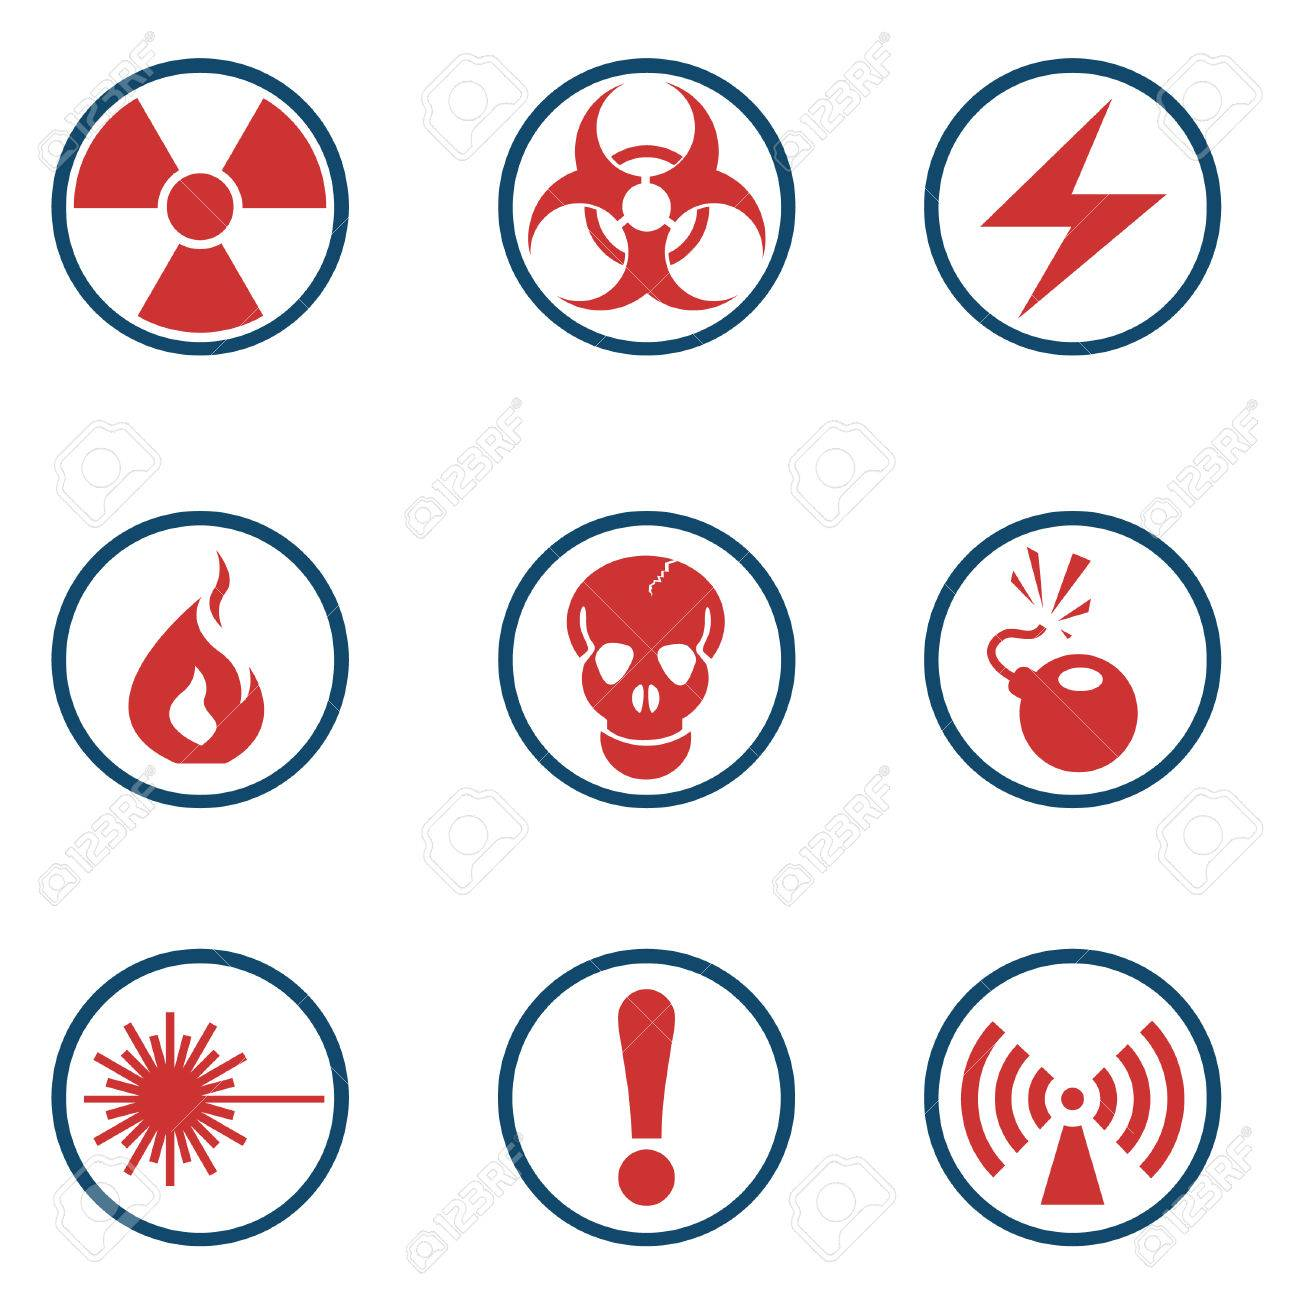 Hazard Sign Icons Stock Vector - 28602127